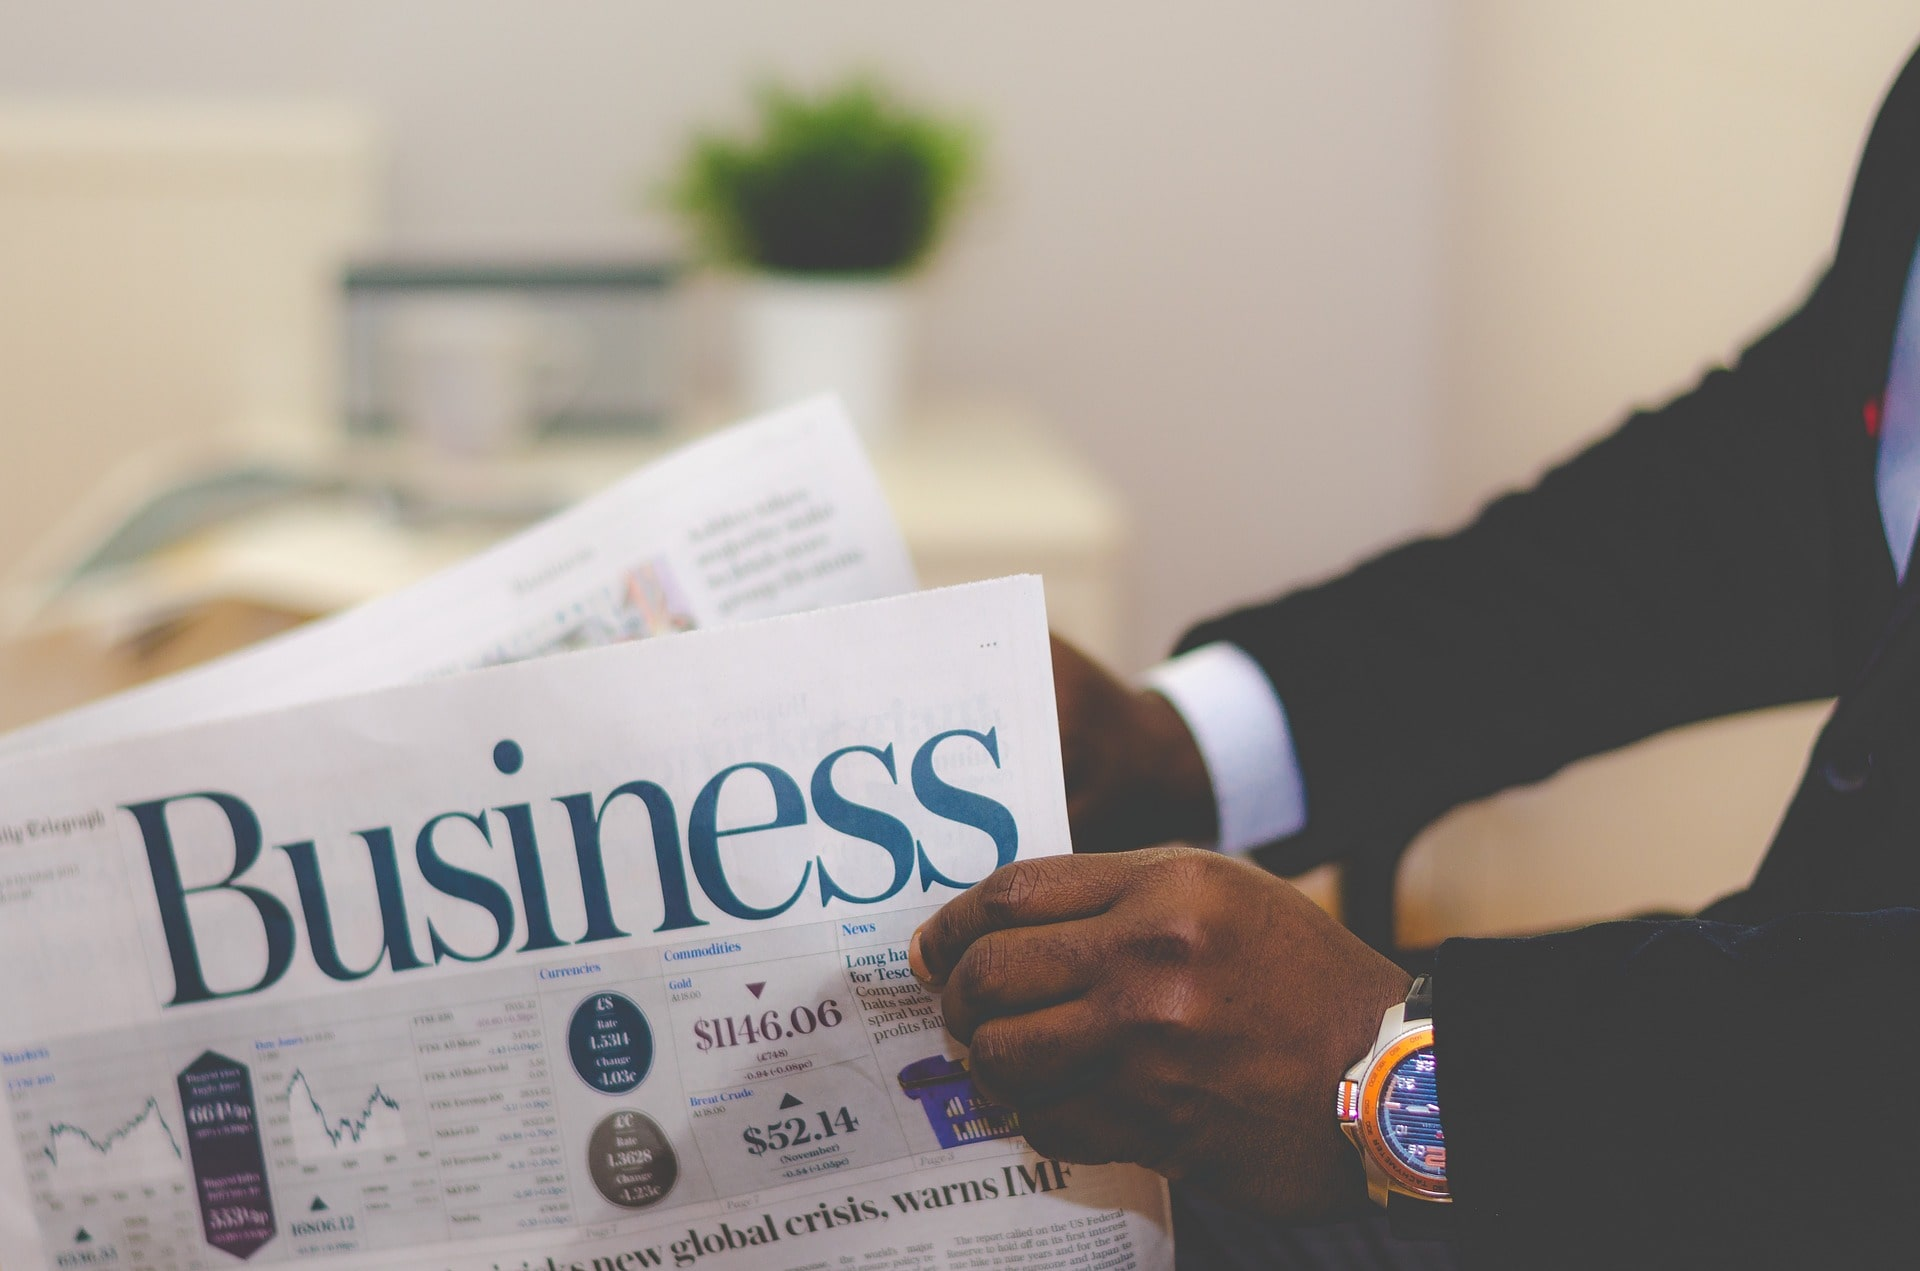 7 Best Newspapers for Stock Market India to Read cover